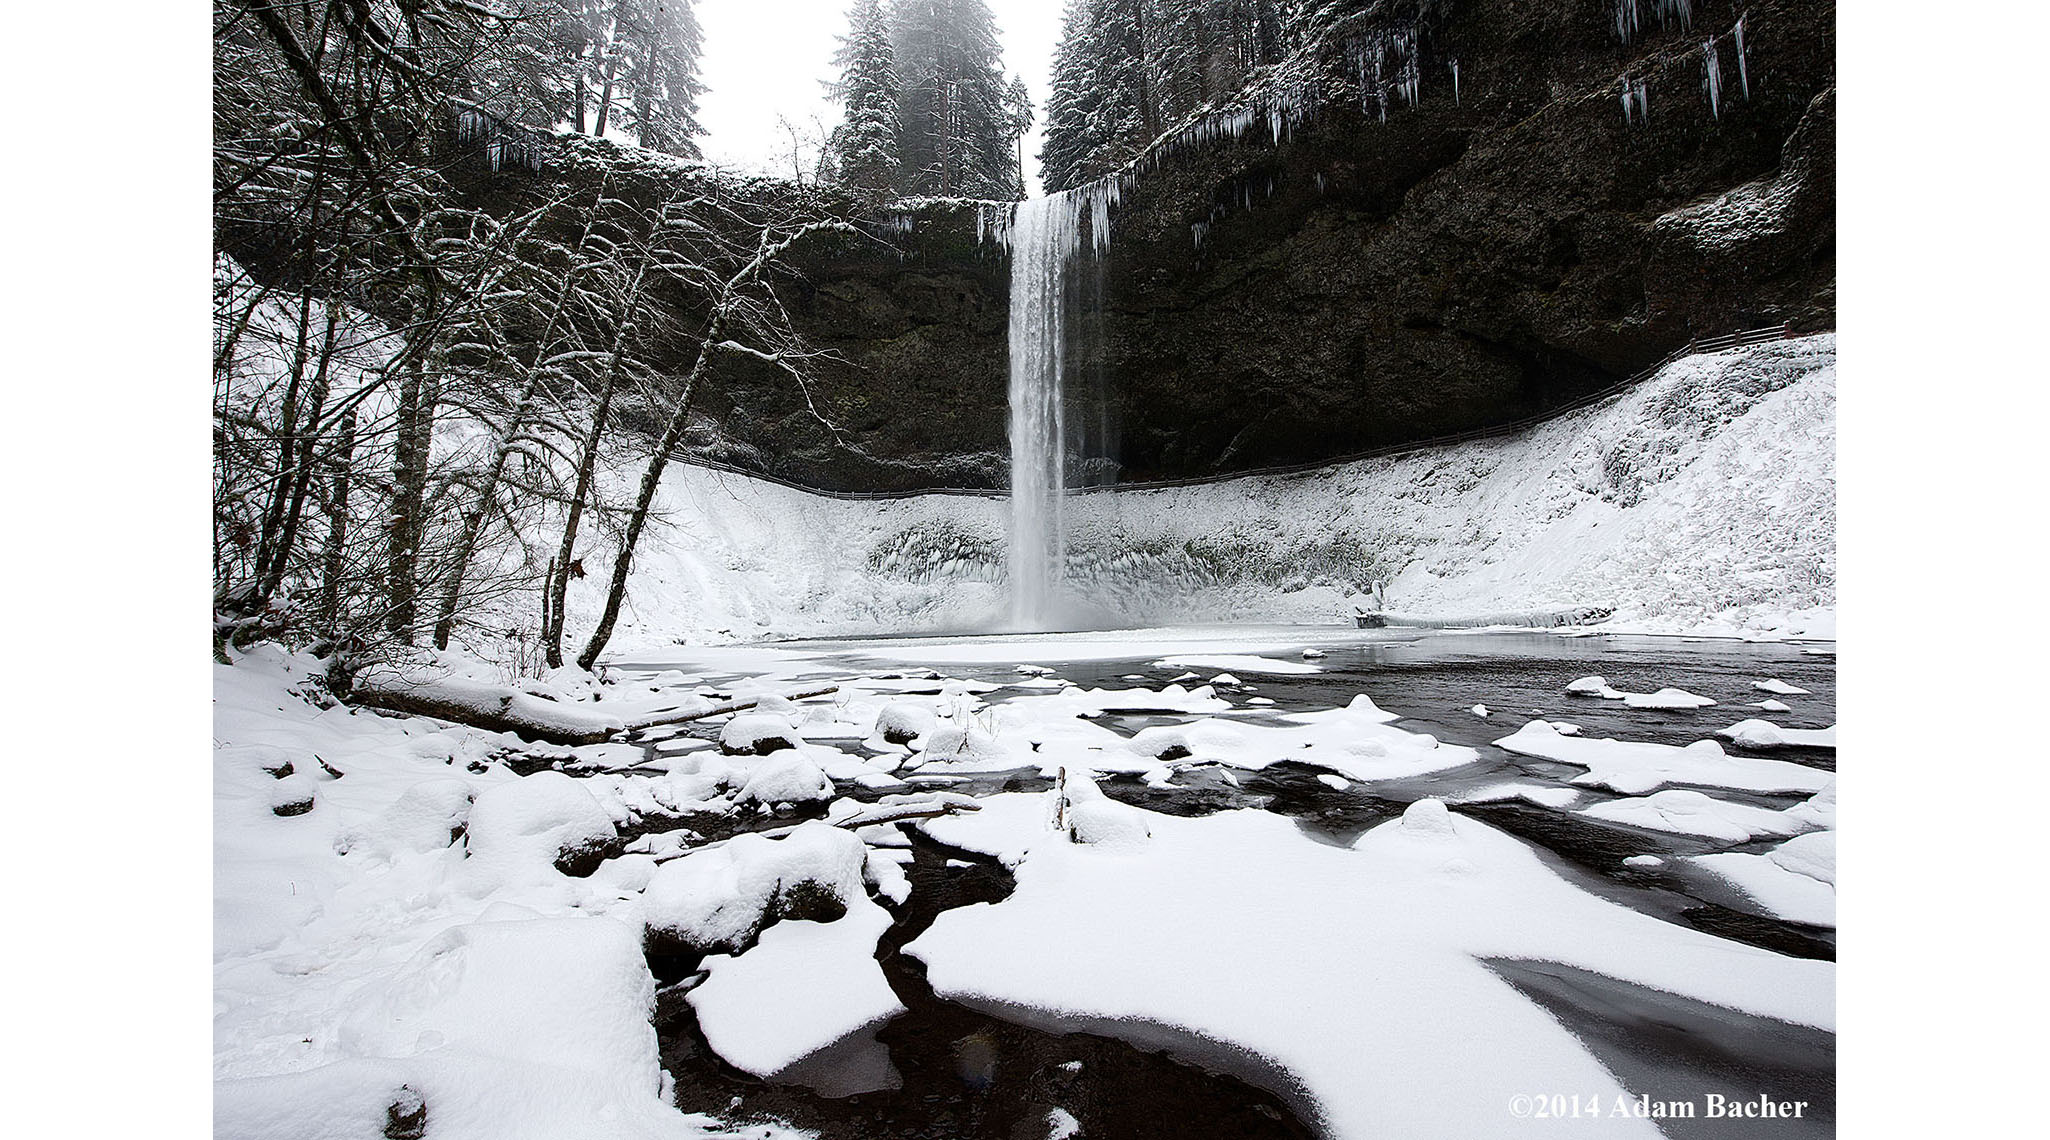 Photographing Waterfalls in Winter